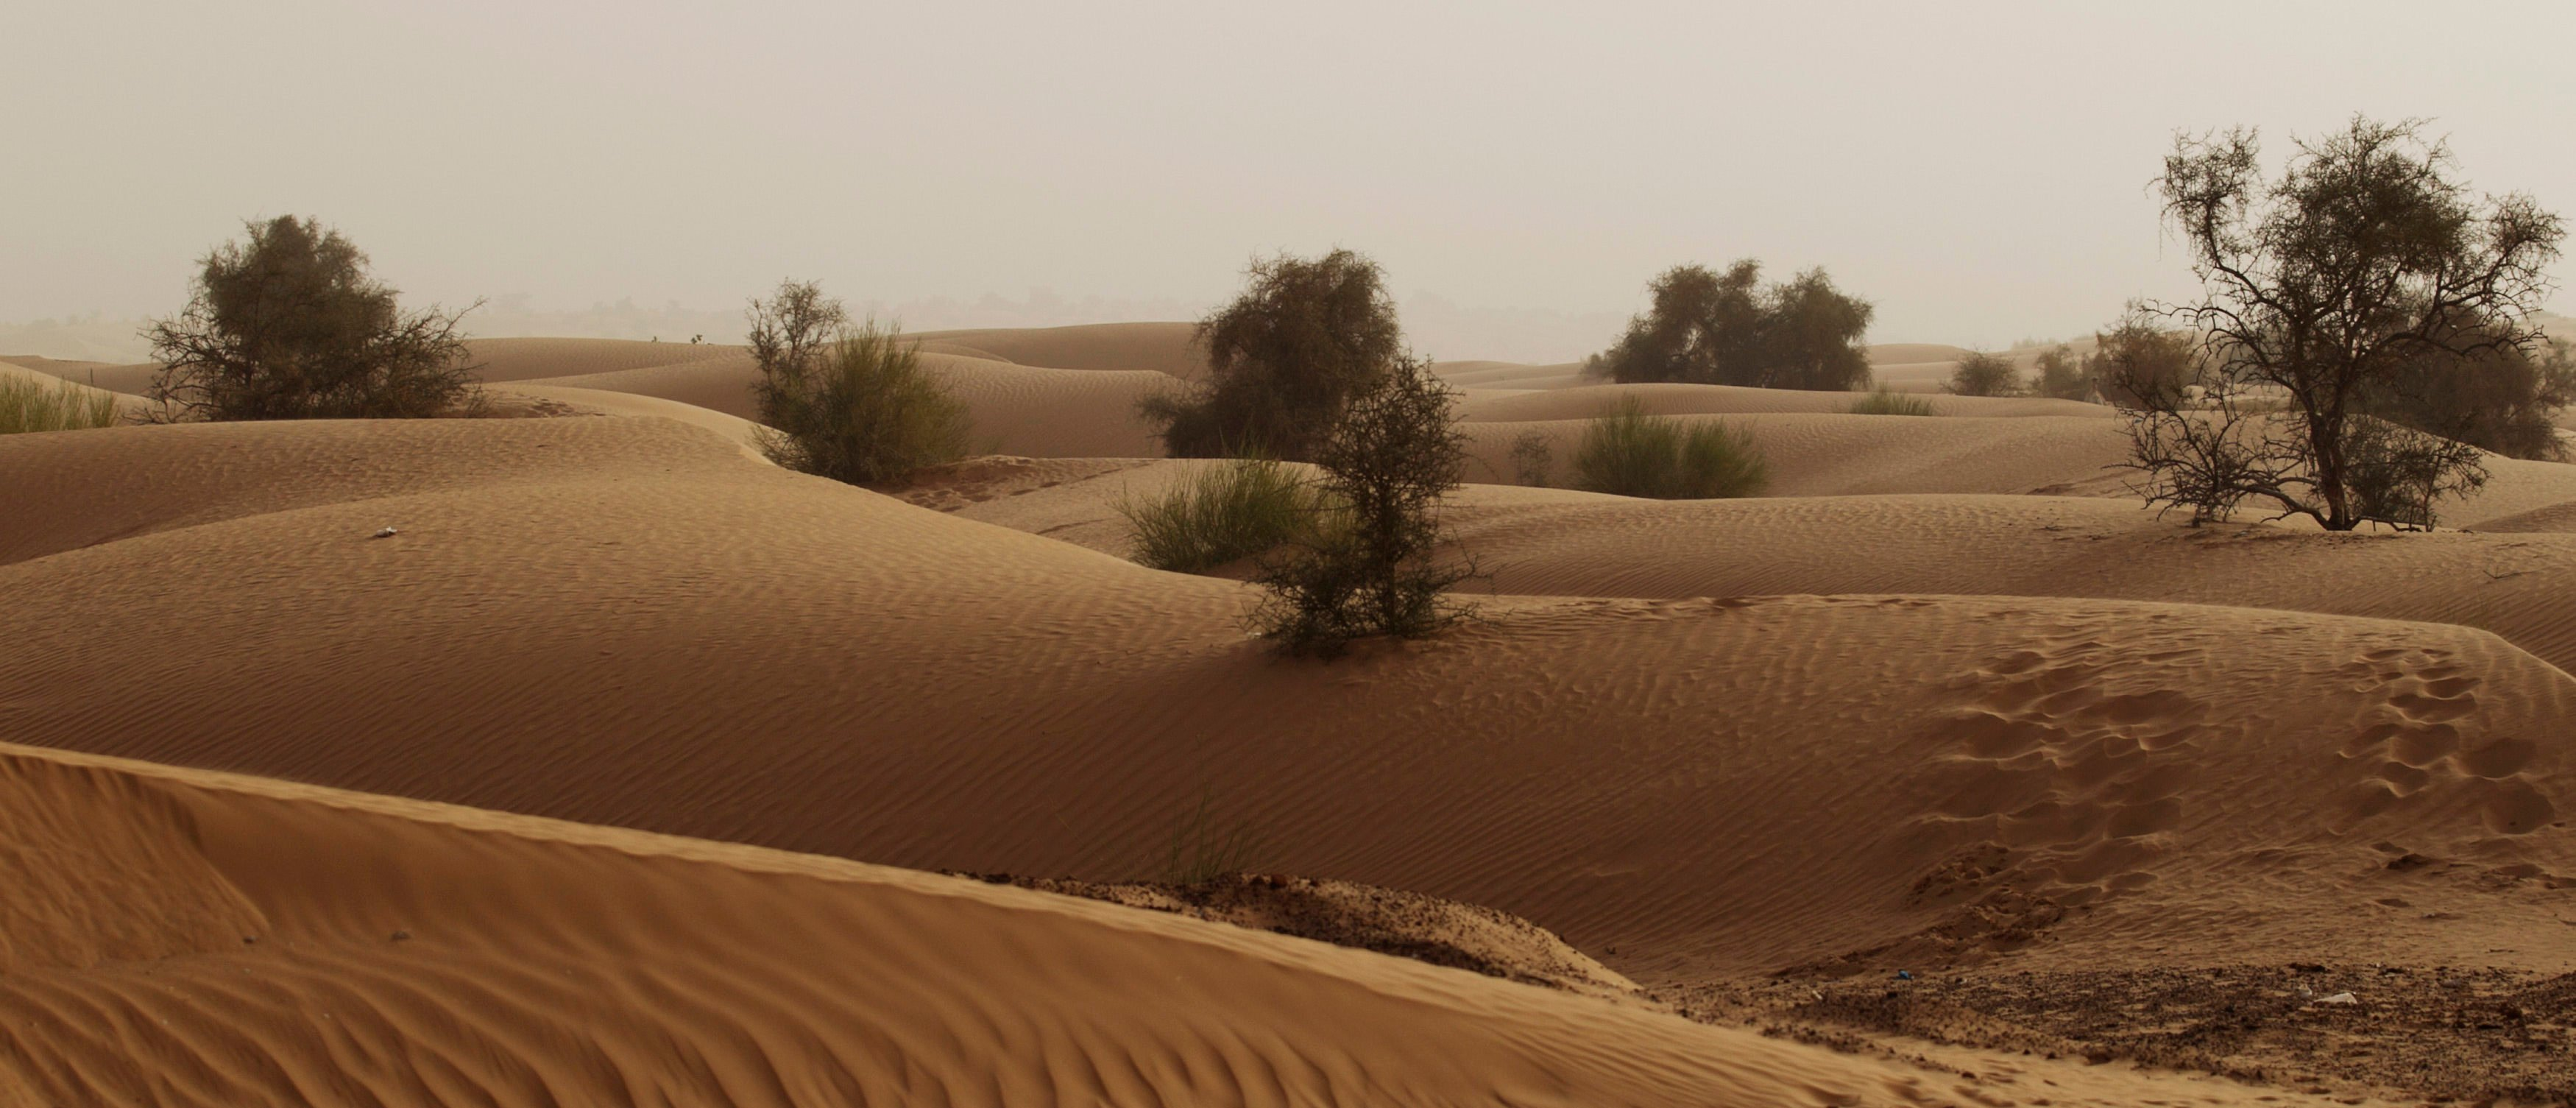 Sand dunes are seen in the Sahara Desert outside the town of Aleg, Mauritania, May 20, 2012. REUTERS/Joe Penney (MAURITANIA - Tags: ENVIRONMENT) | There's Climate Alarmism About The Sahara